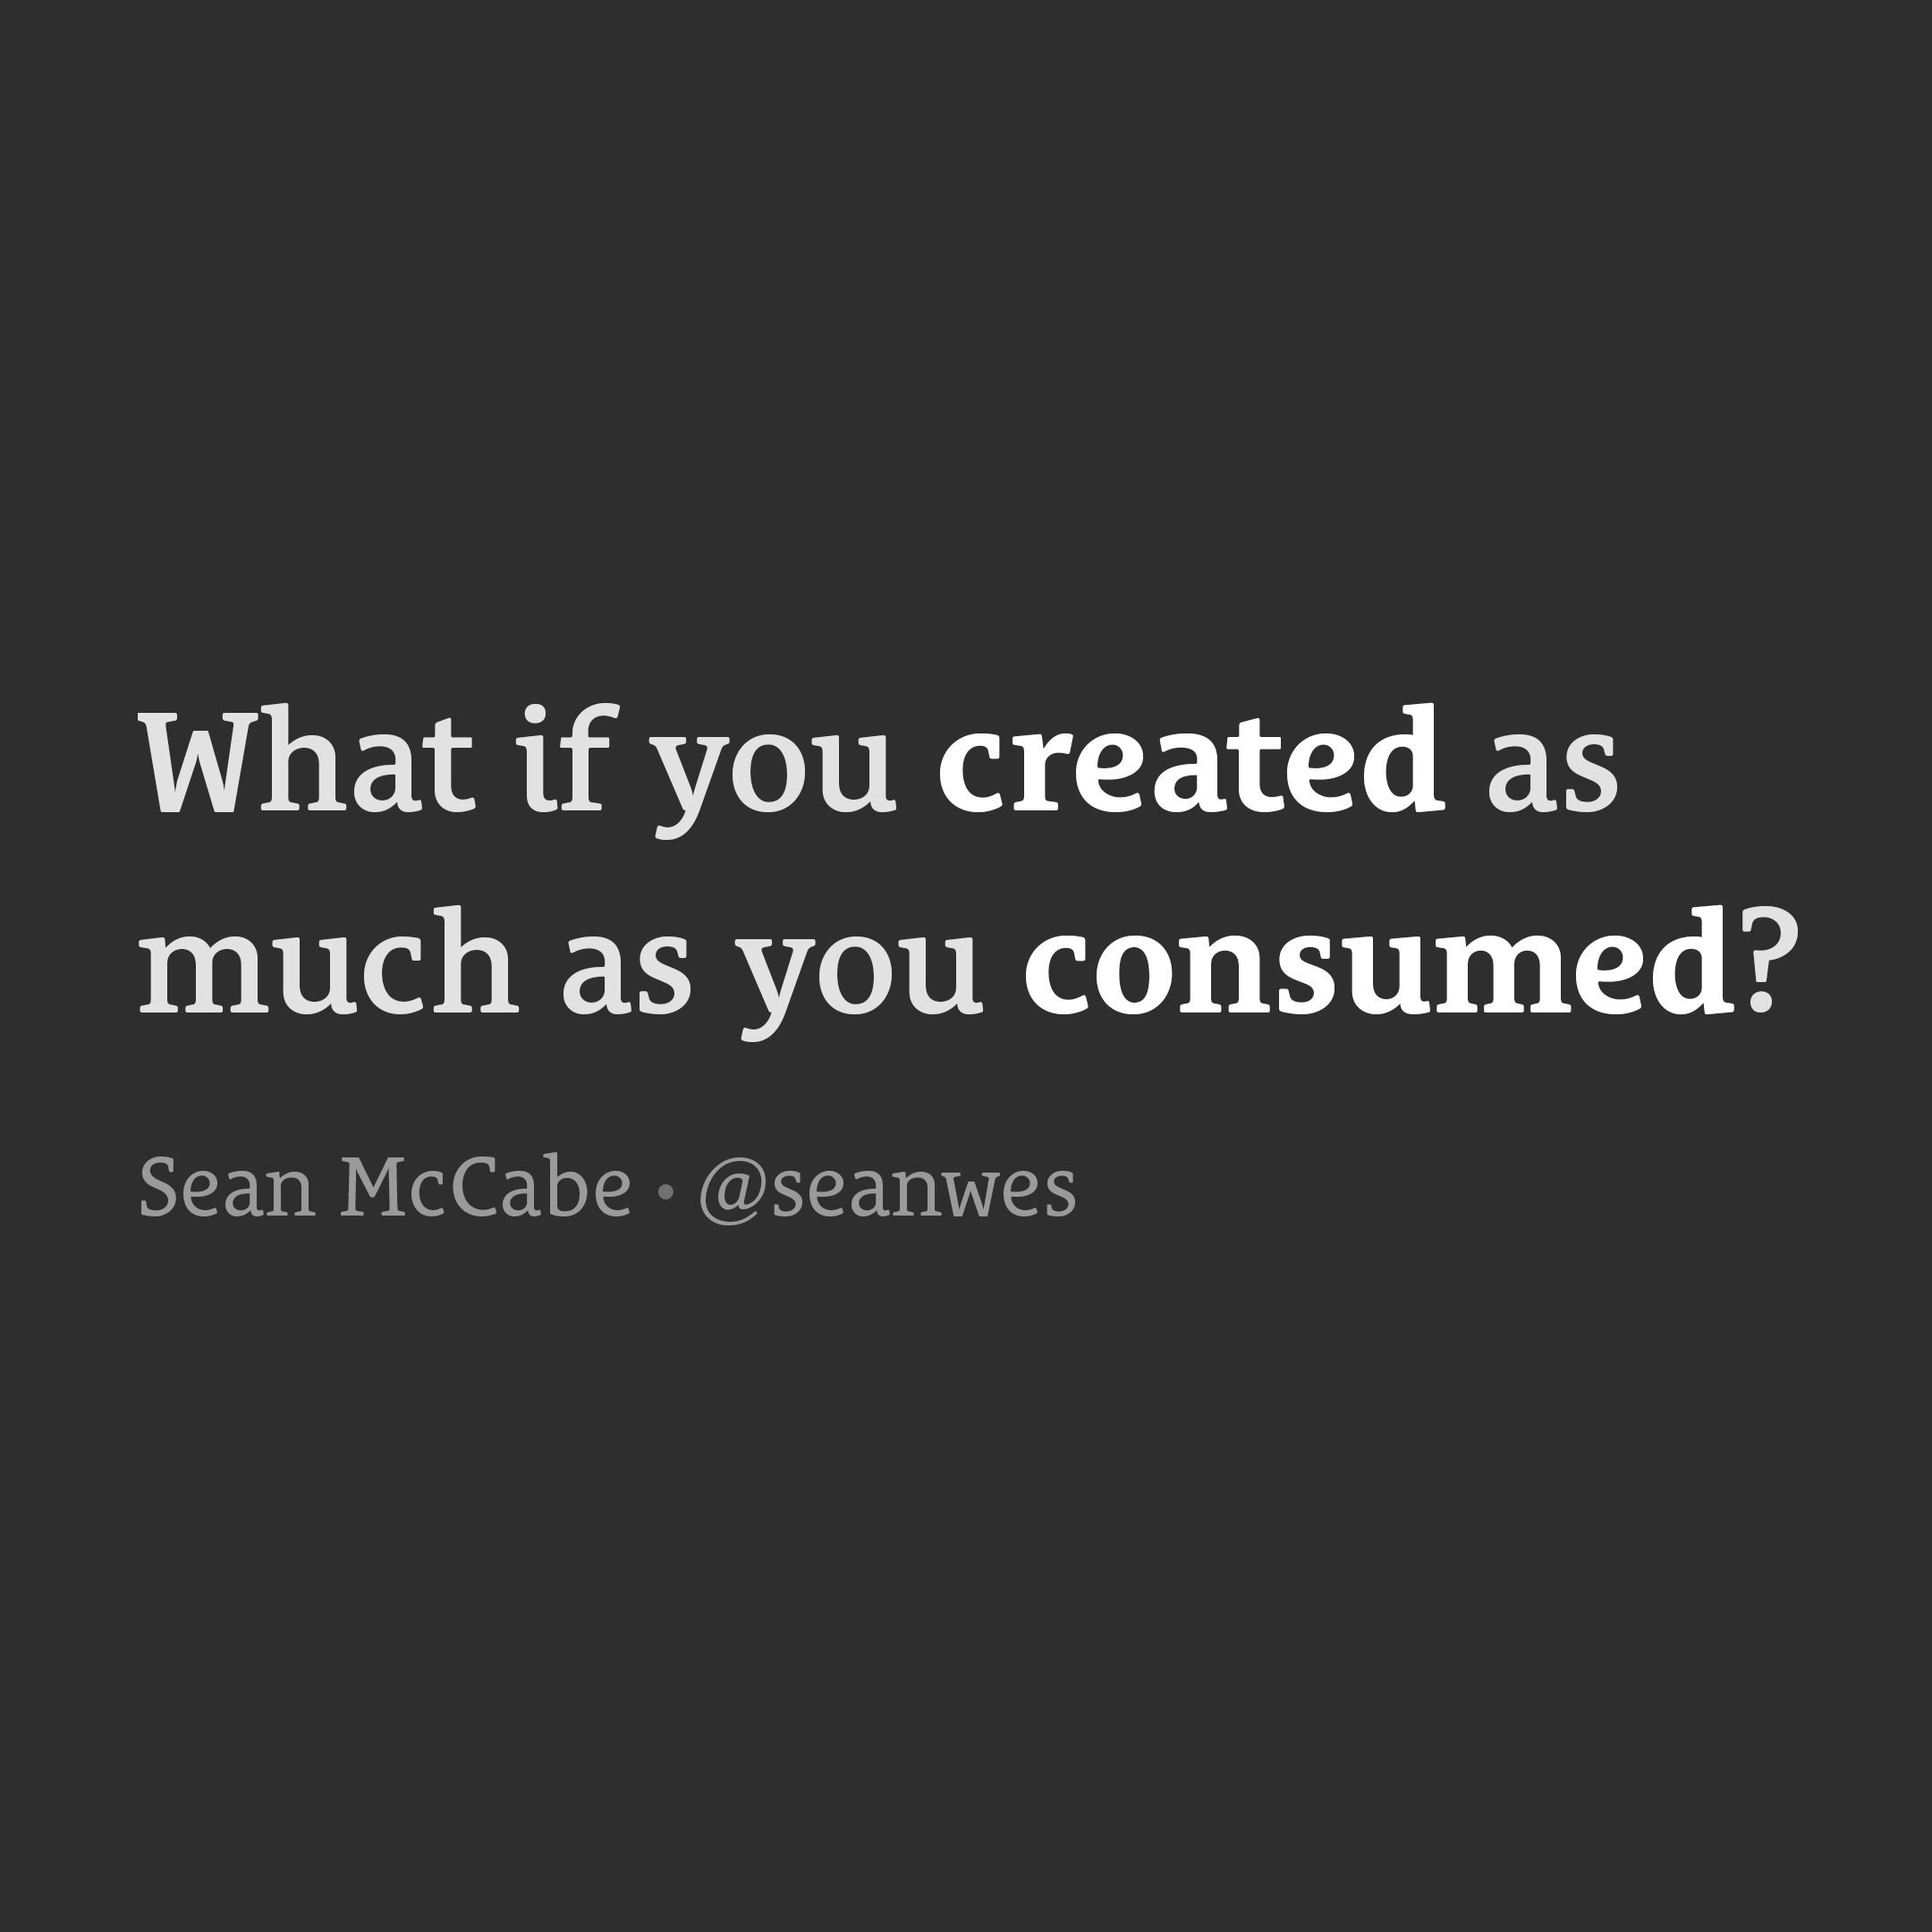 What if you created as much as you consumed?